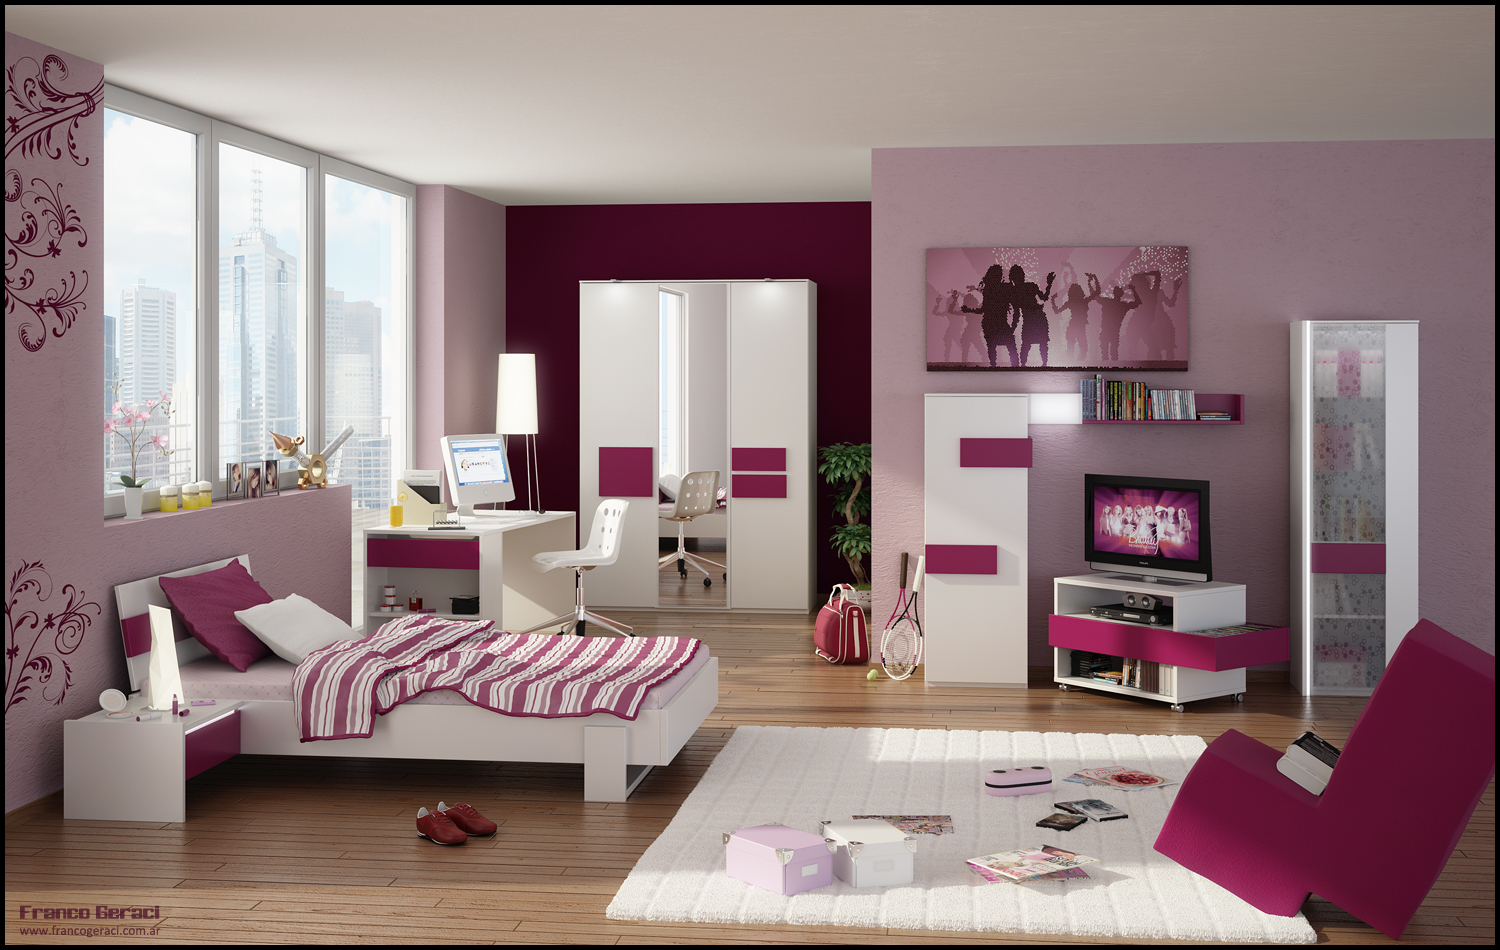 Best interior design feminine home designer for Room interior design for teenagers